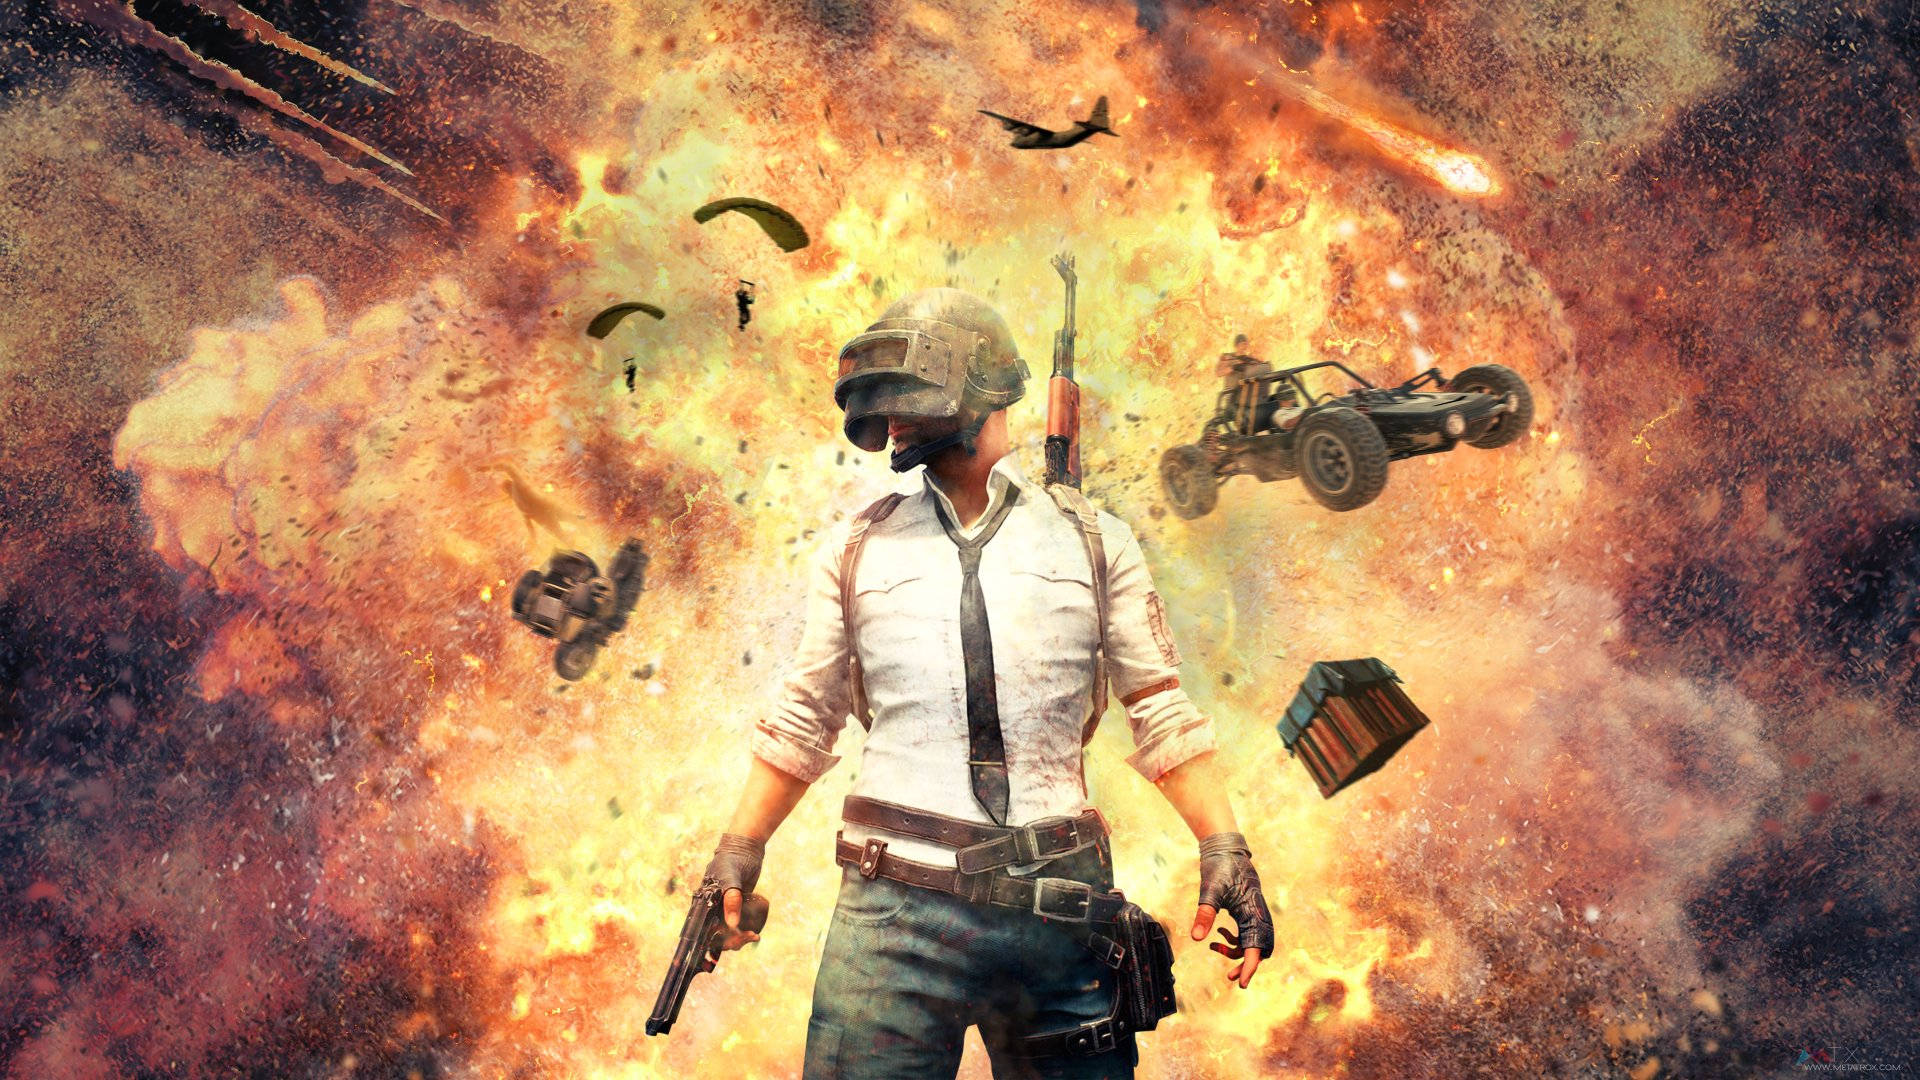 Wallpaper Of Pubg Mobile: Background Images - Read Games Review